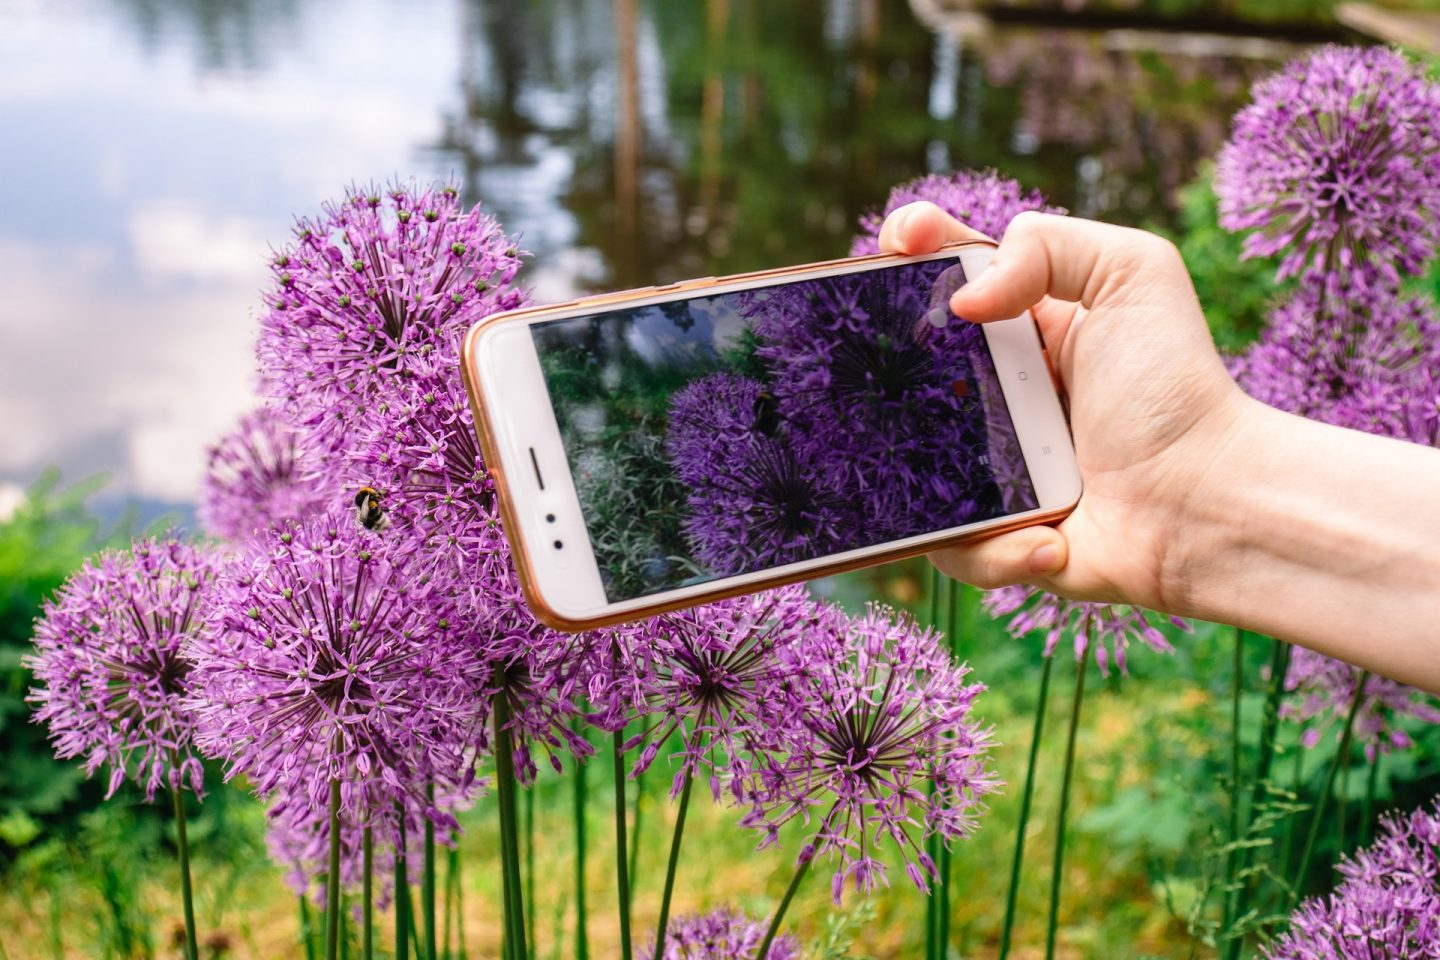 Person taking photo of Allium with mobile phone